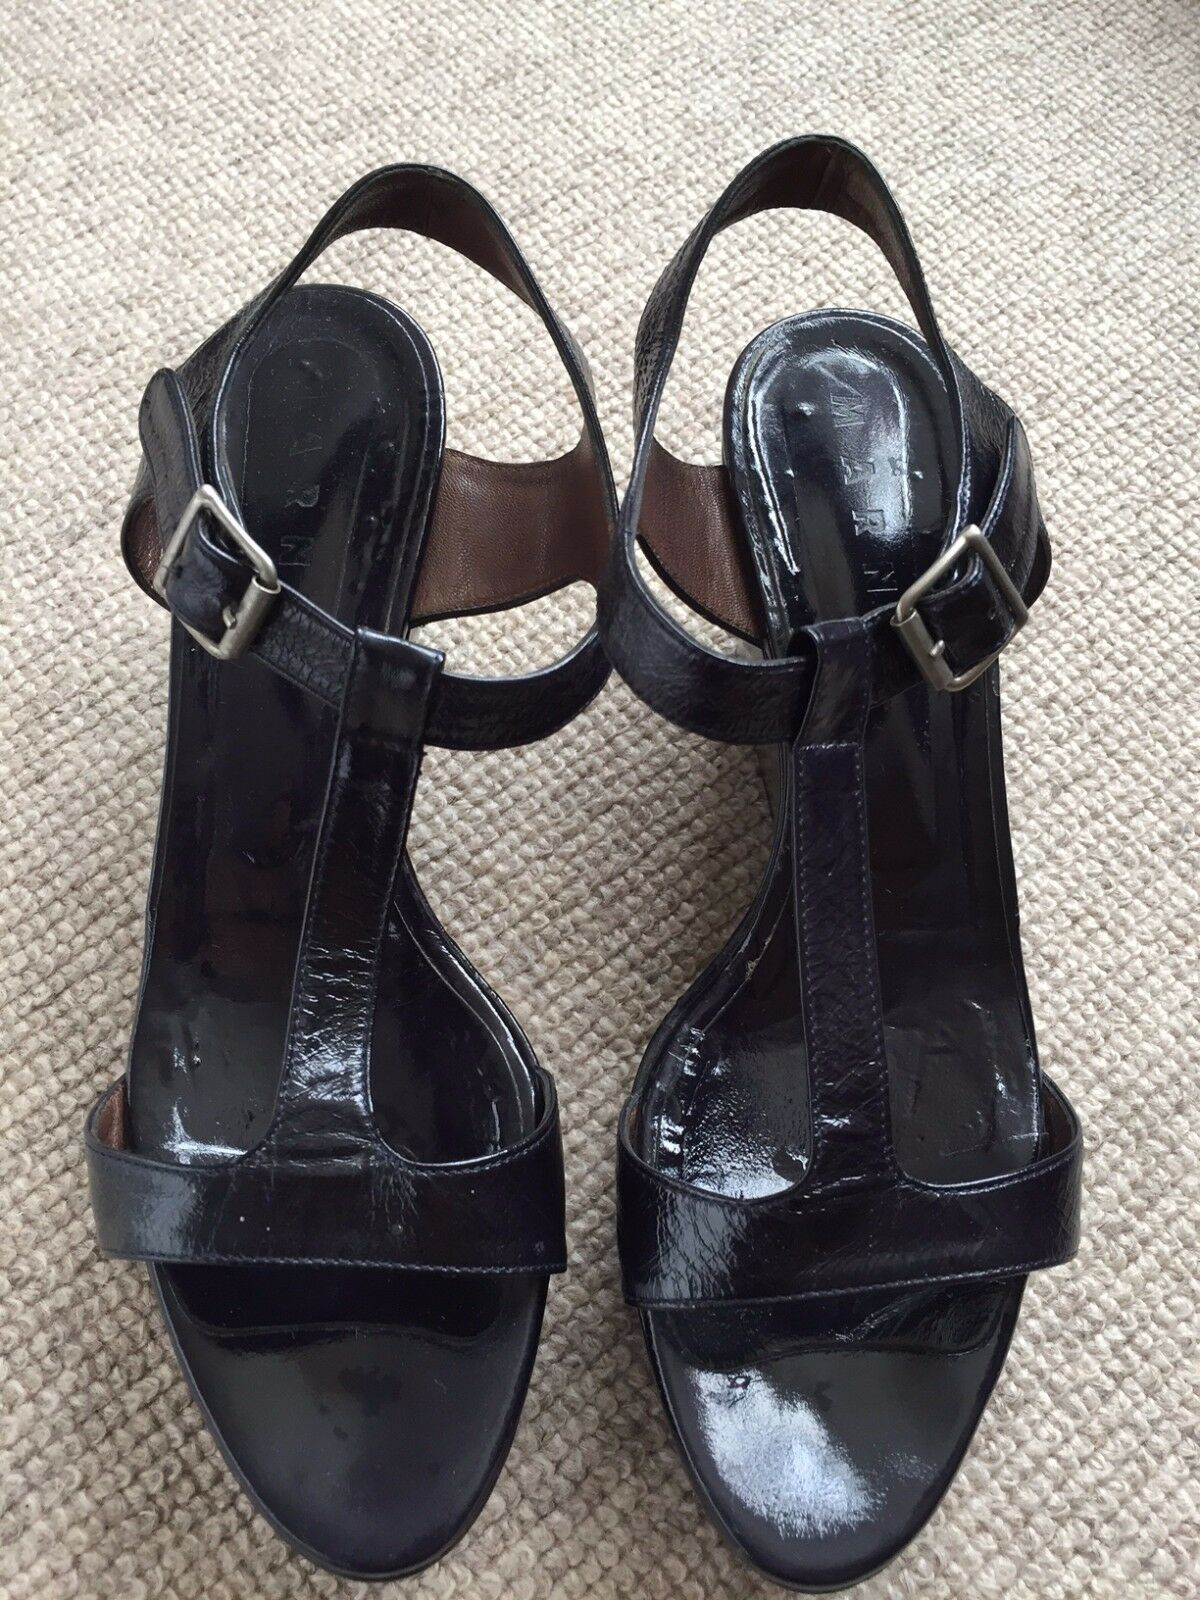 Marni Midnight bluee Patent Leather Wedge Sandals Size 39